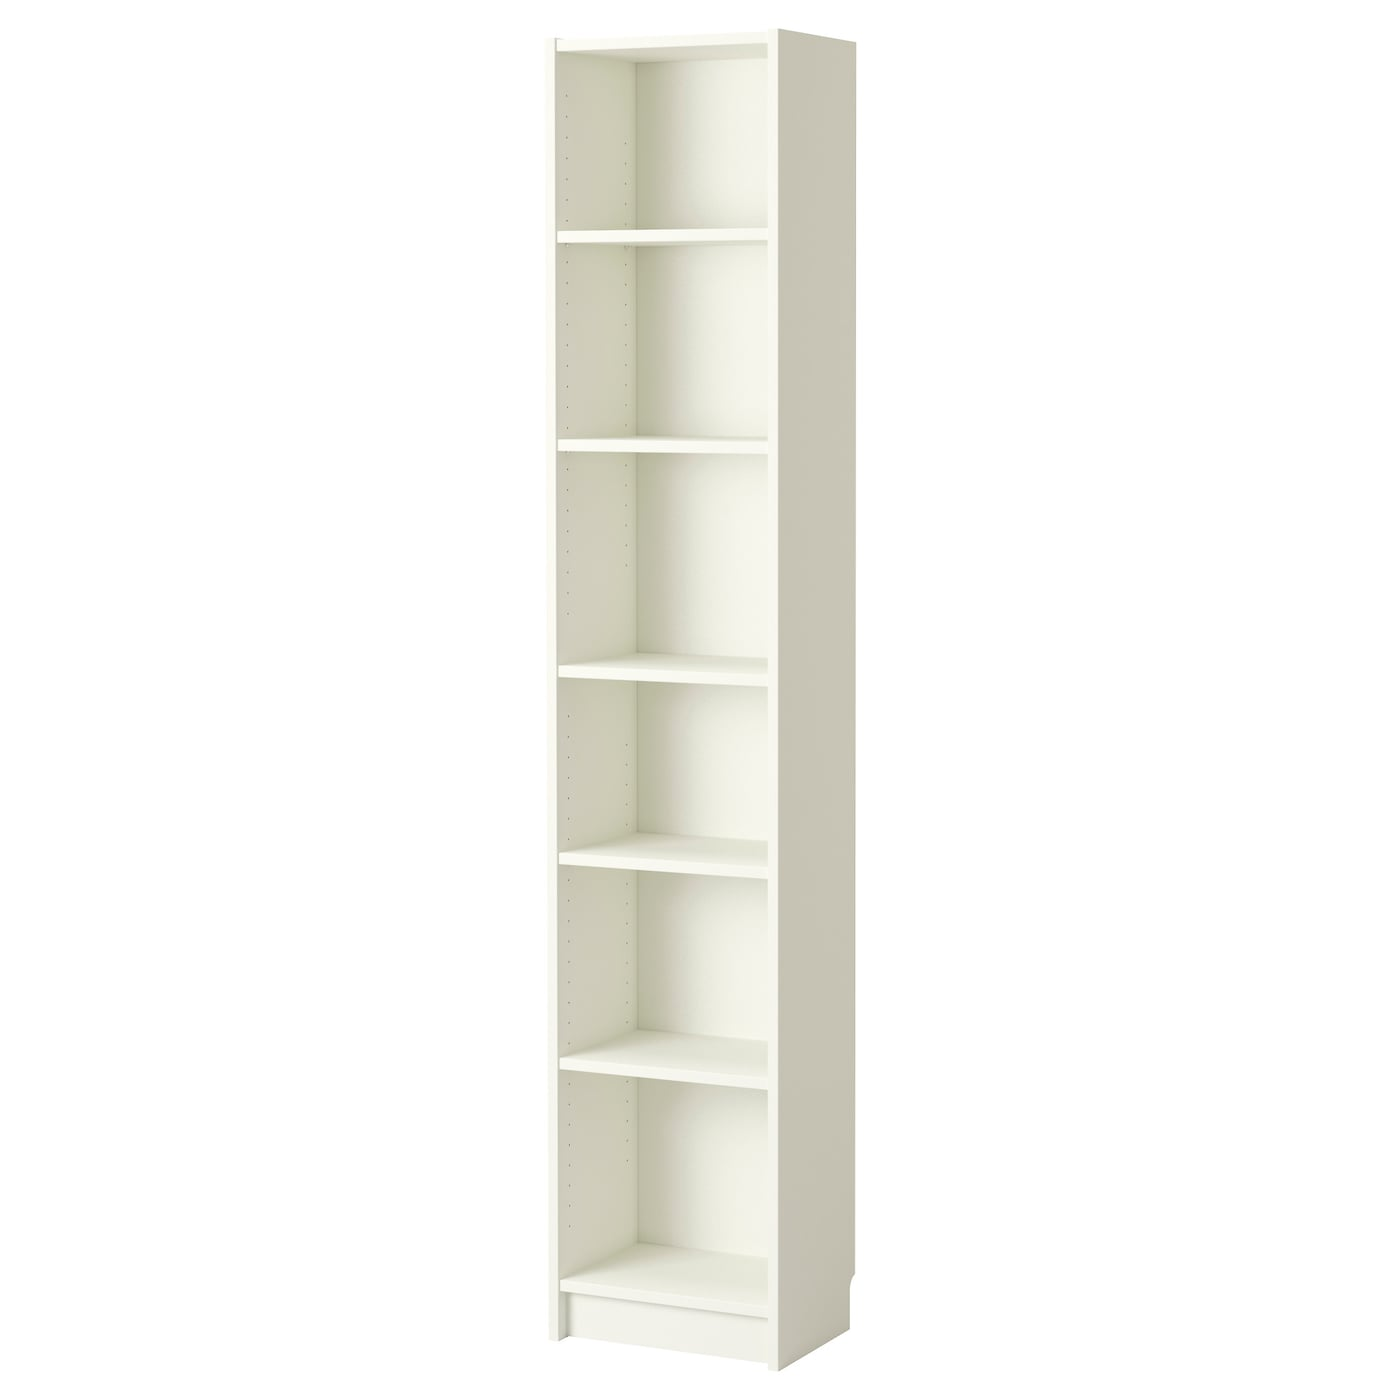 Billy bookcase white 40x28x202 cm ikea for Meuble 9 cases ikea